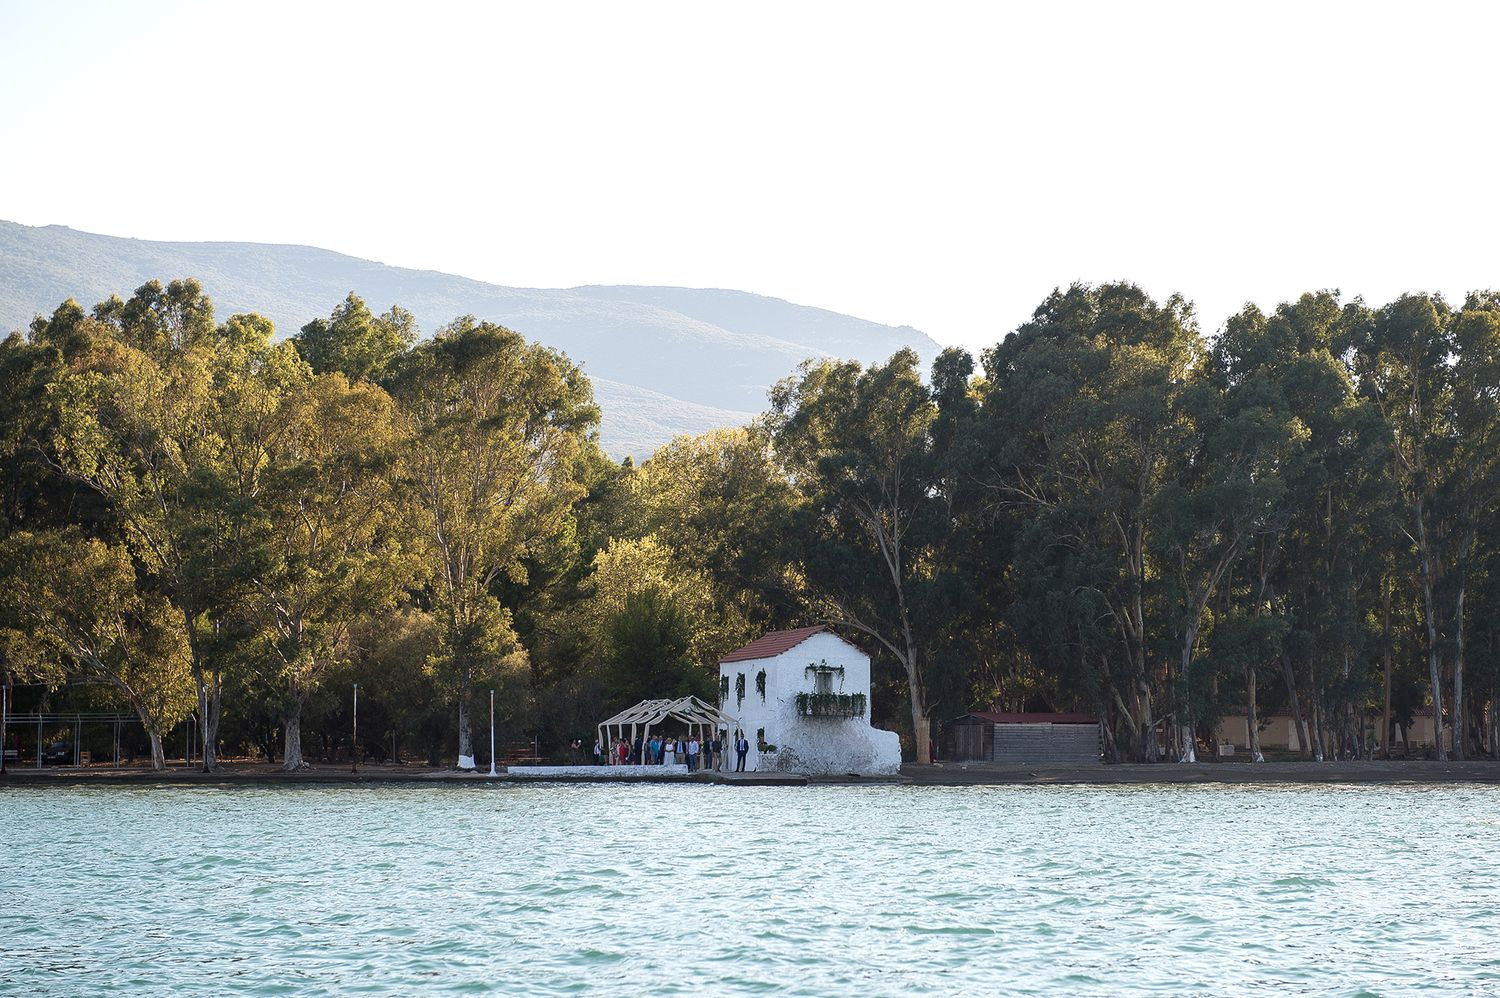 view of church in poros island by the sea among the forest